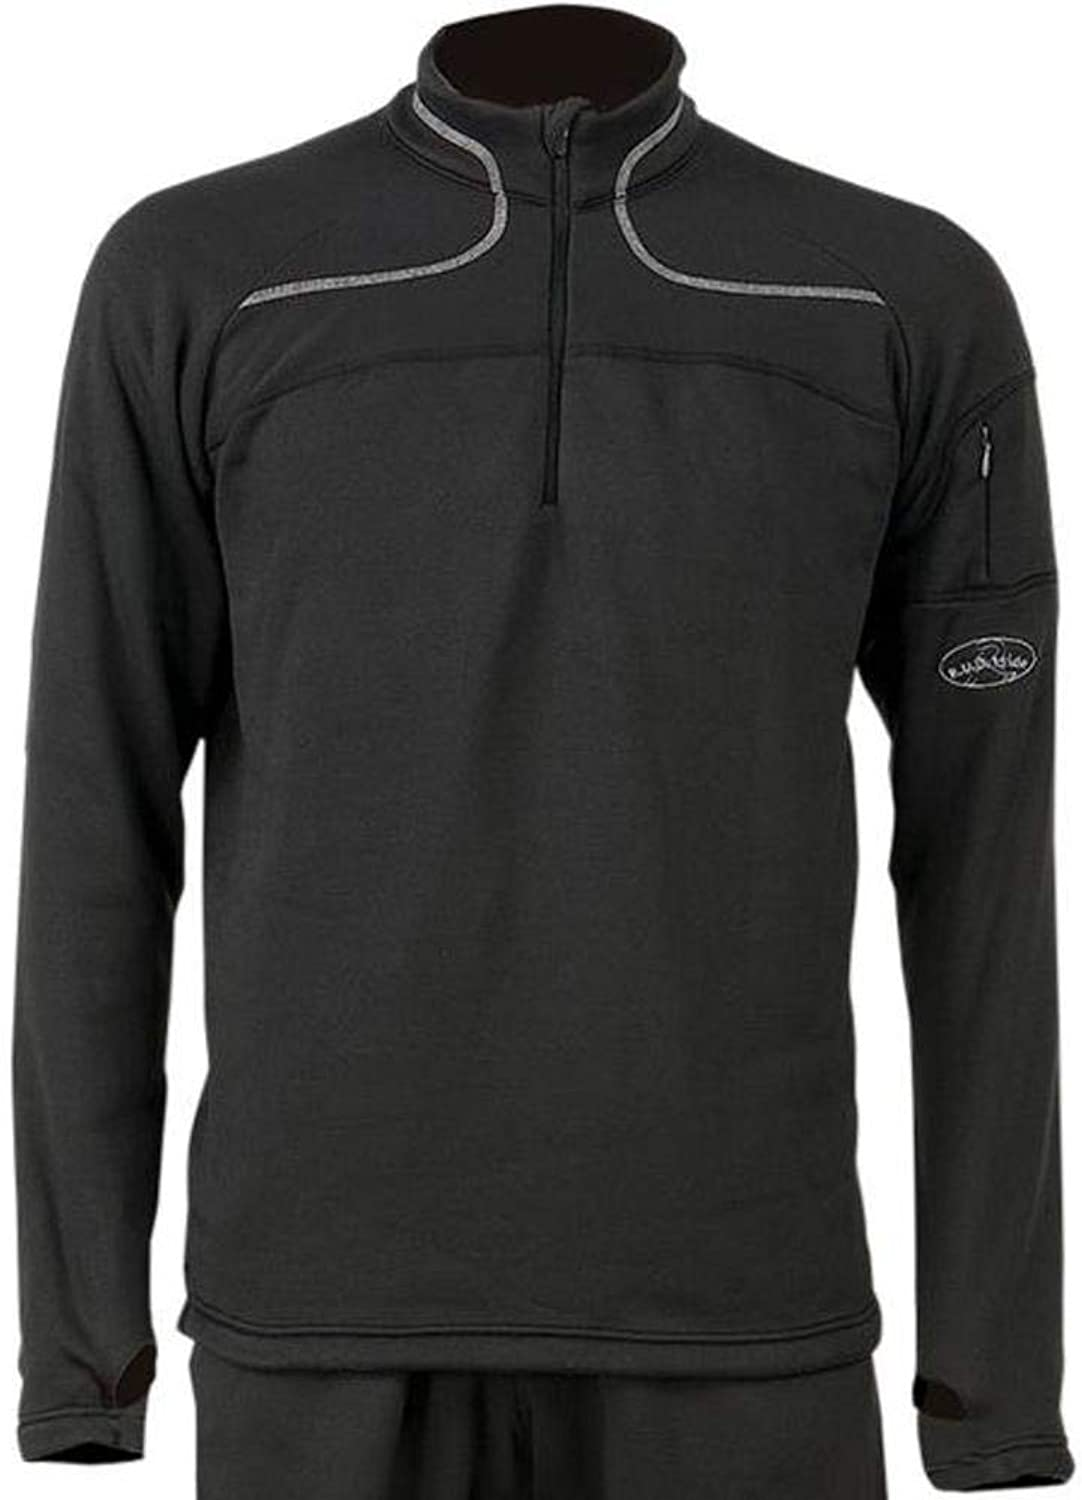 R.U.Outside Women's Thermo Motion Micro Fleece Half Zip Top